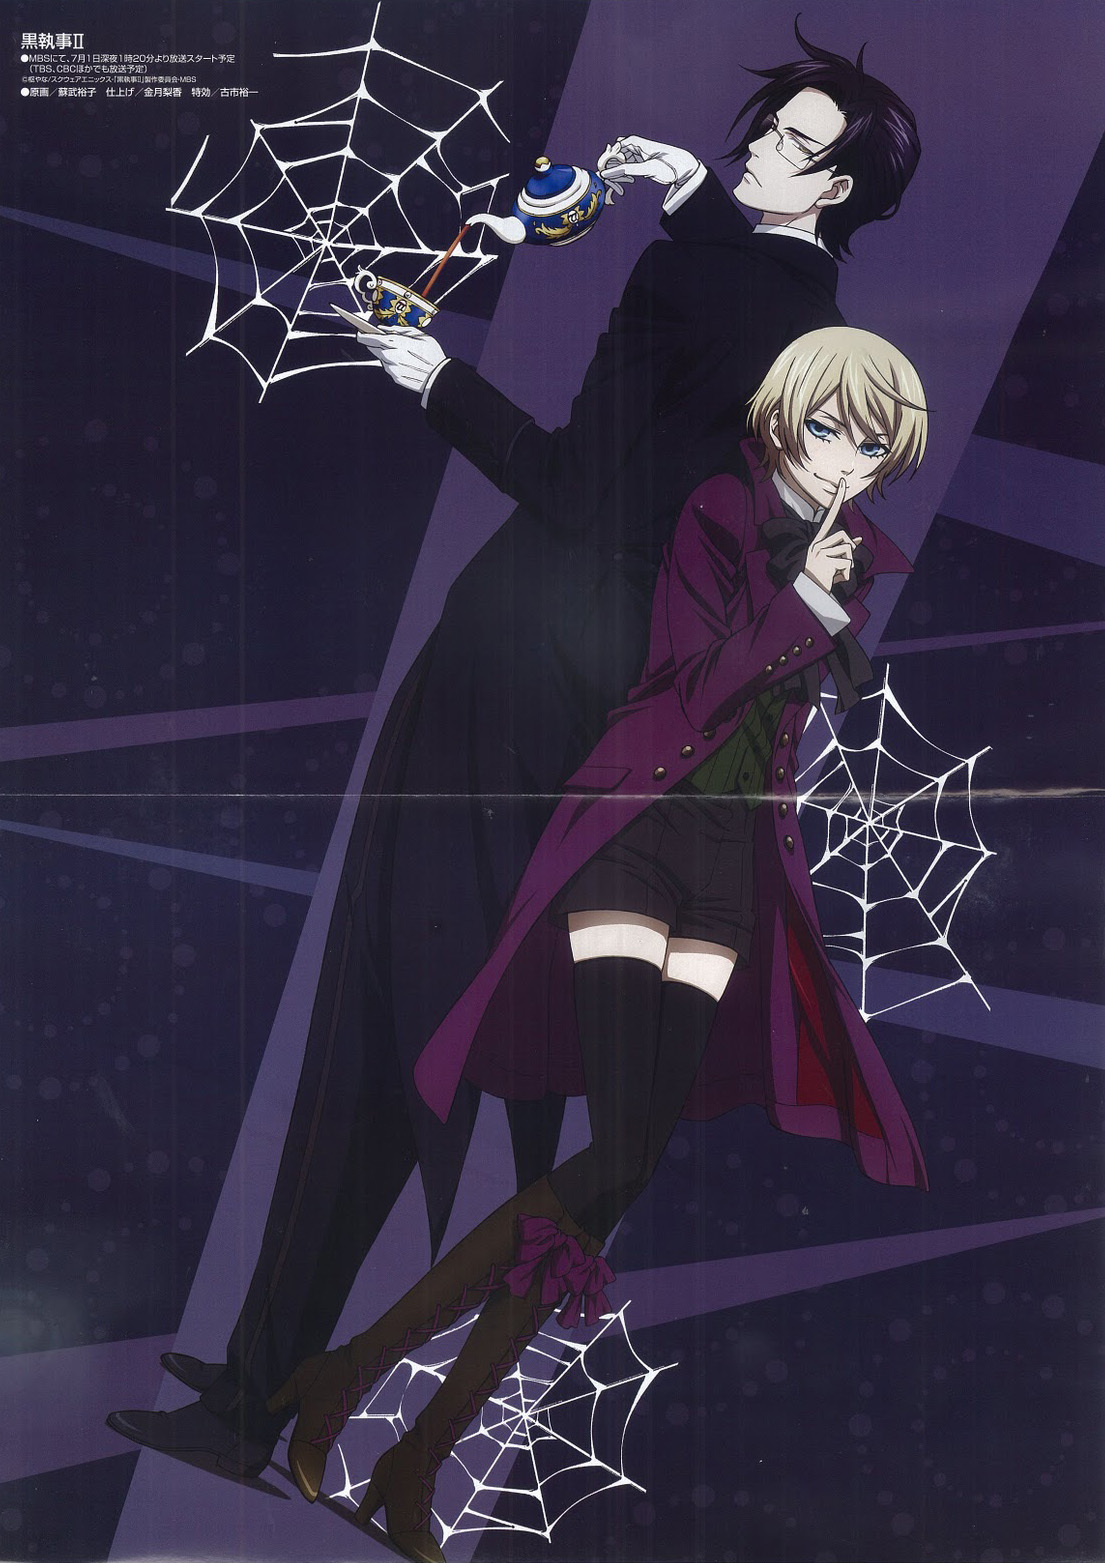 Alois and Claude